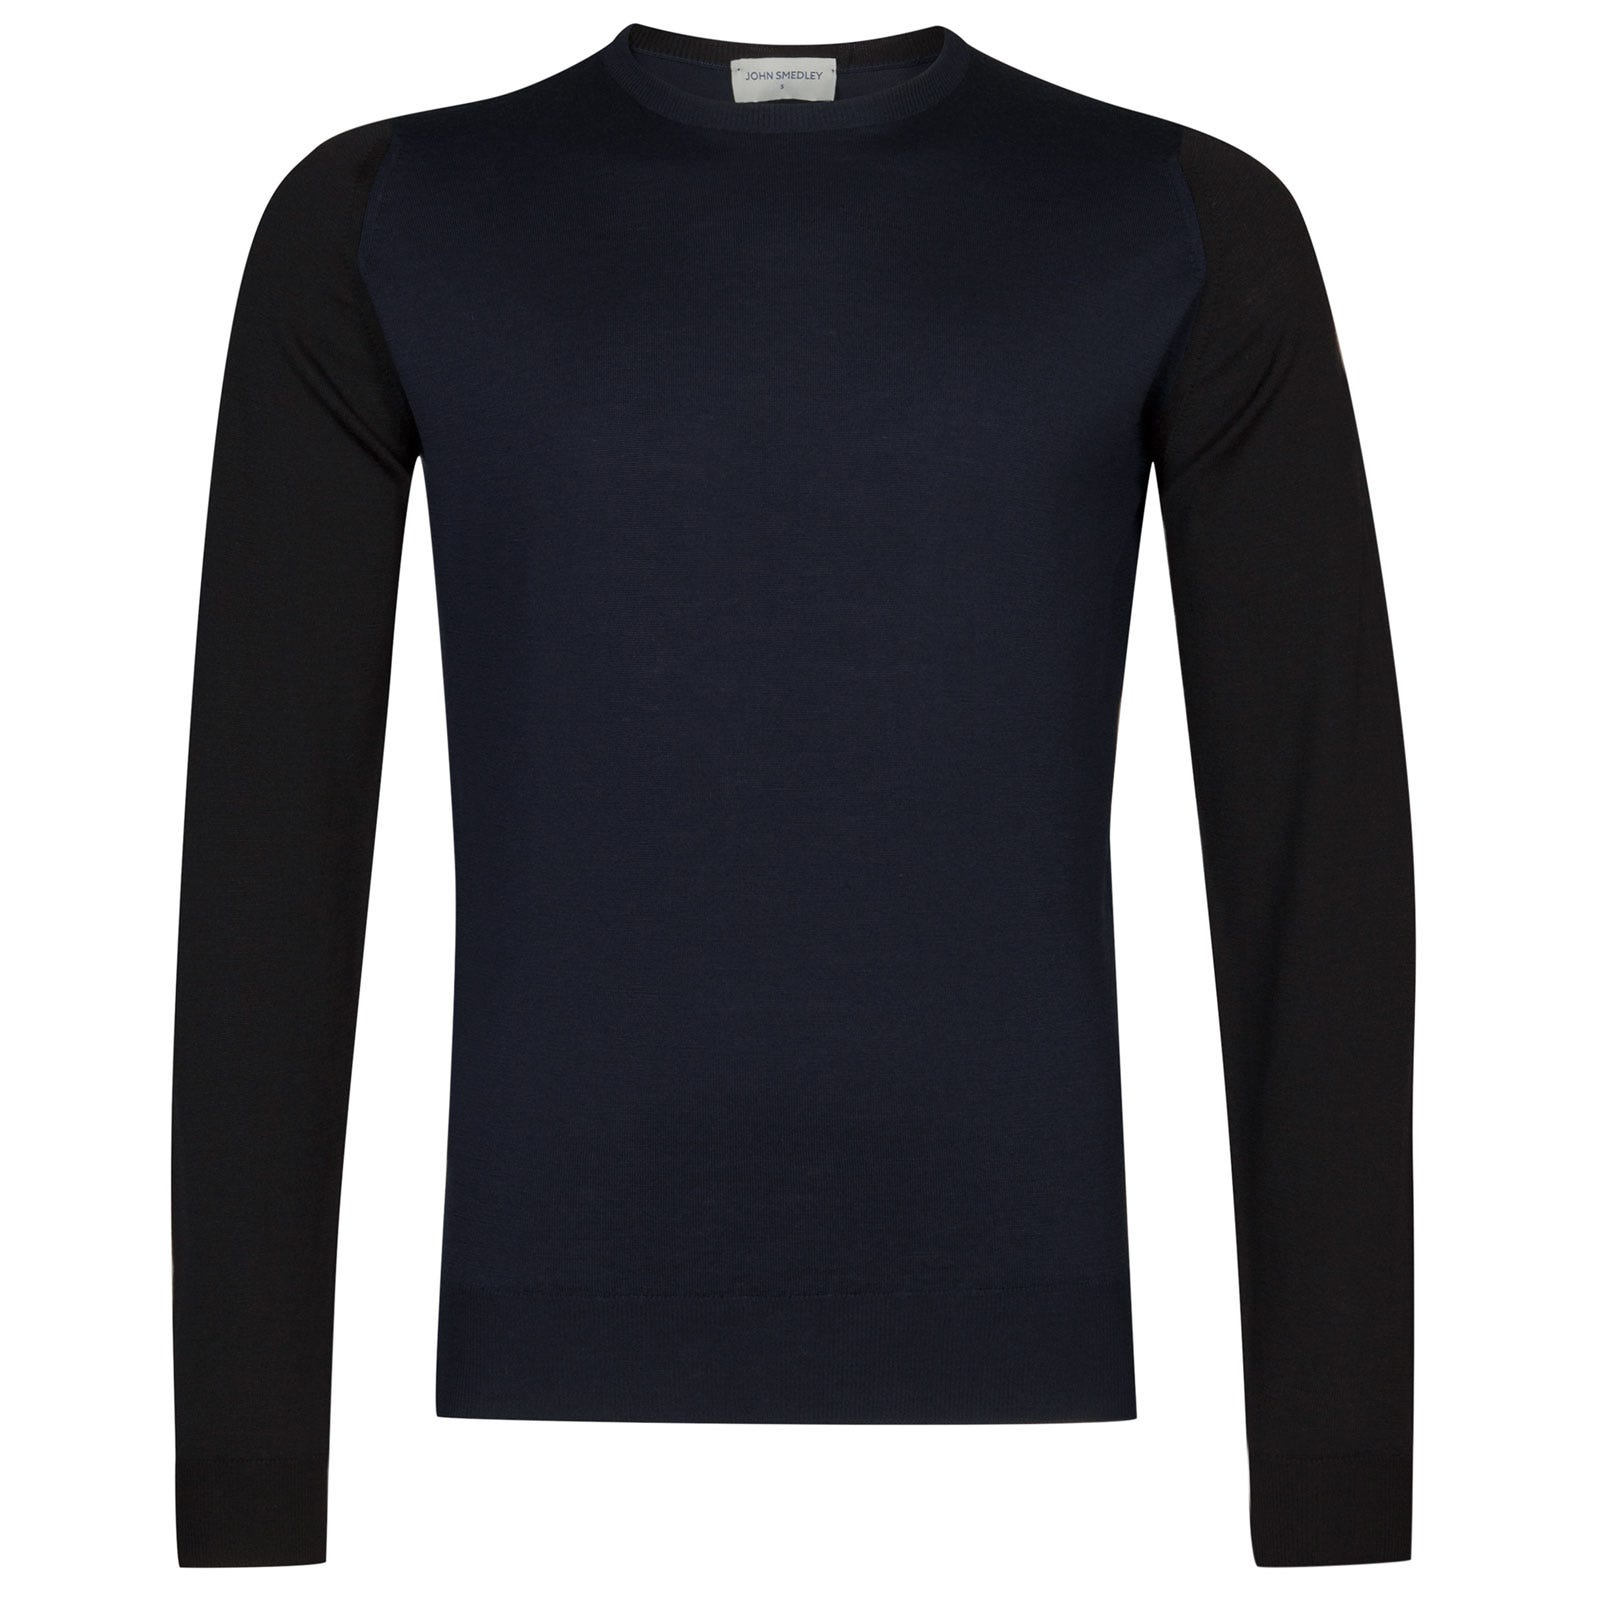 John Smedley hindlow Merino Wool Pullover in Black/Midnight-S